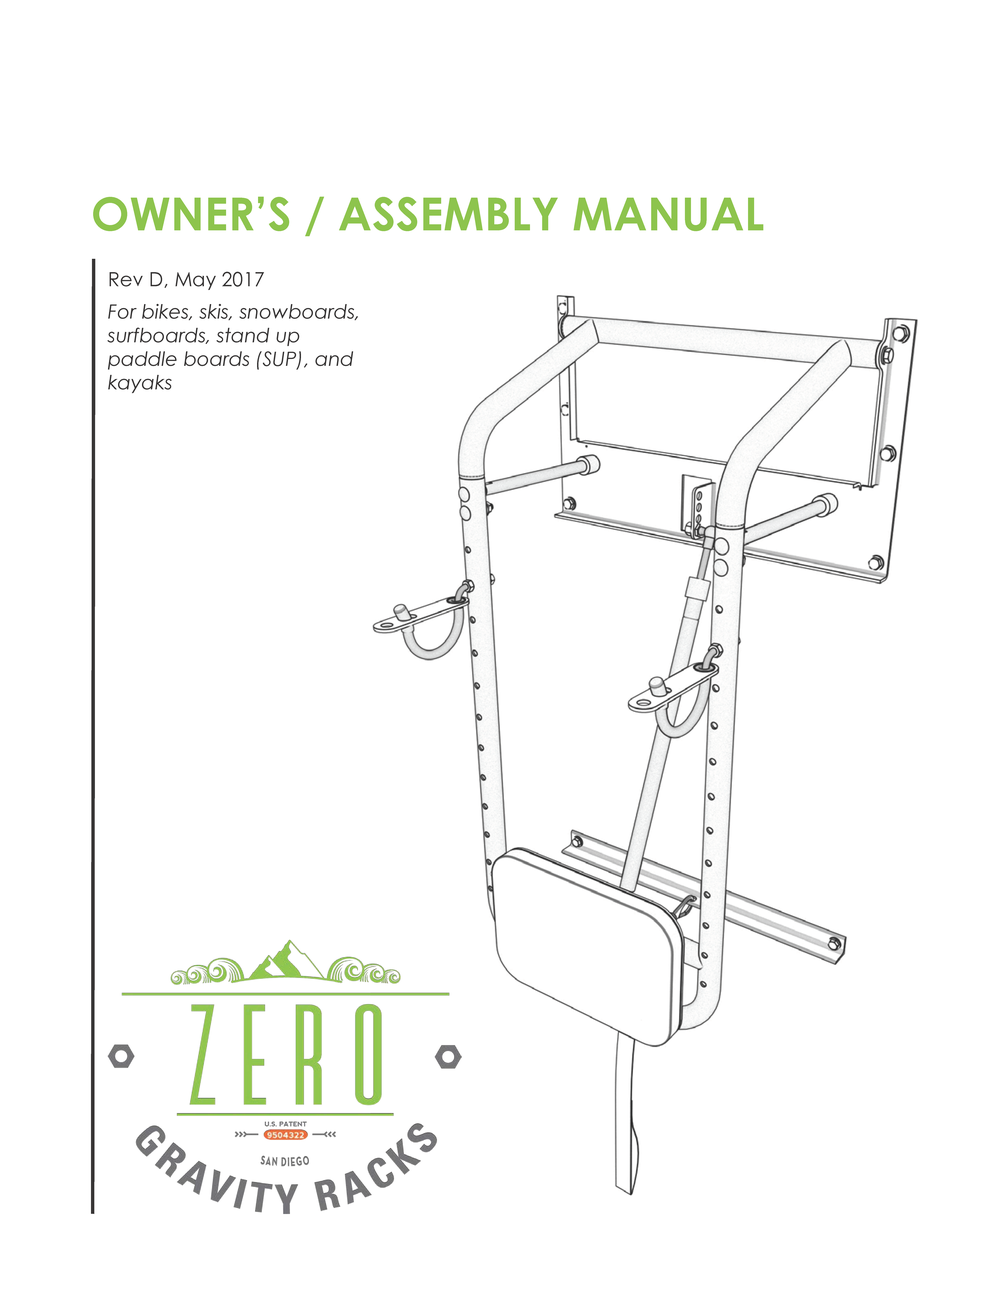 SAMPLE OWNER'S MANUAL -